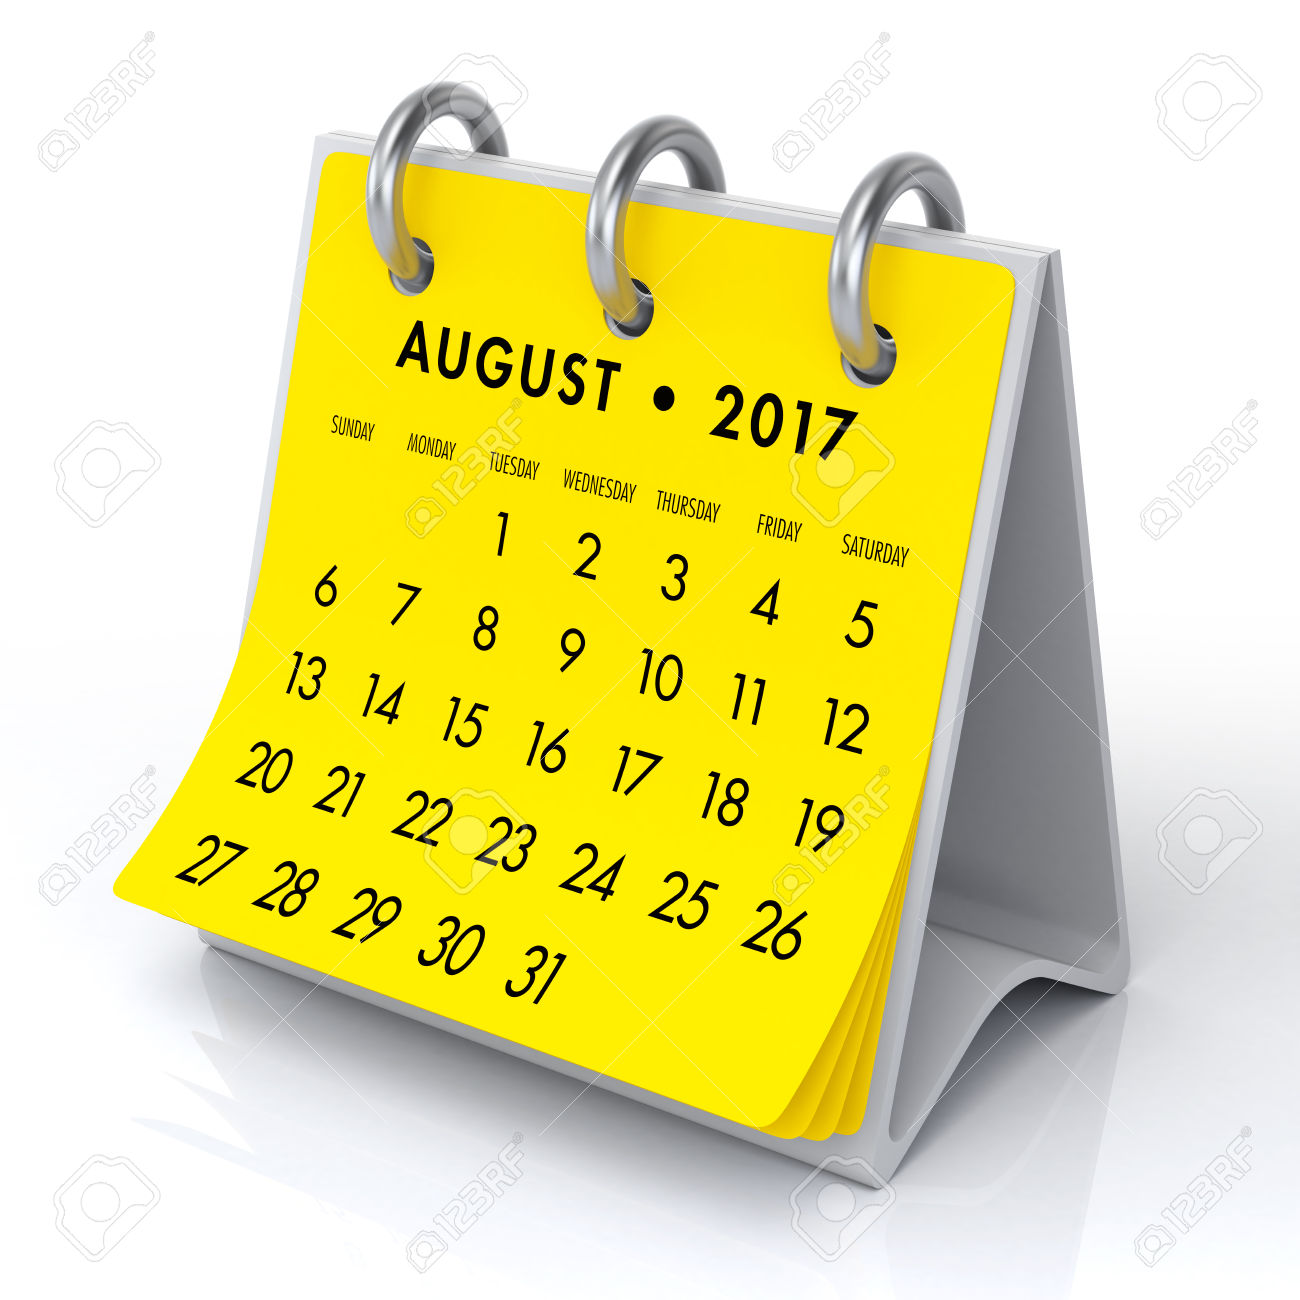 August clipart calendar, August calendar Transparent FREE.